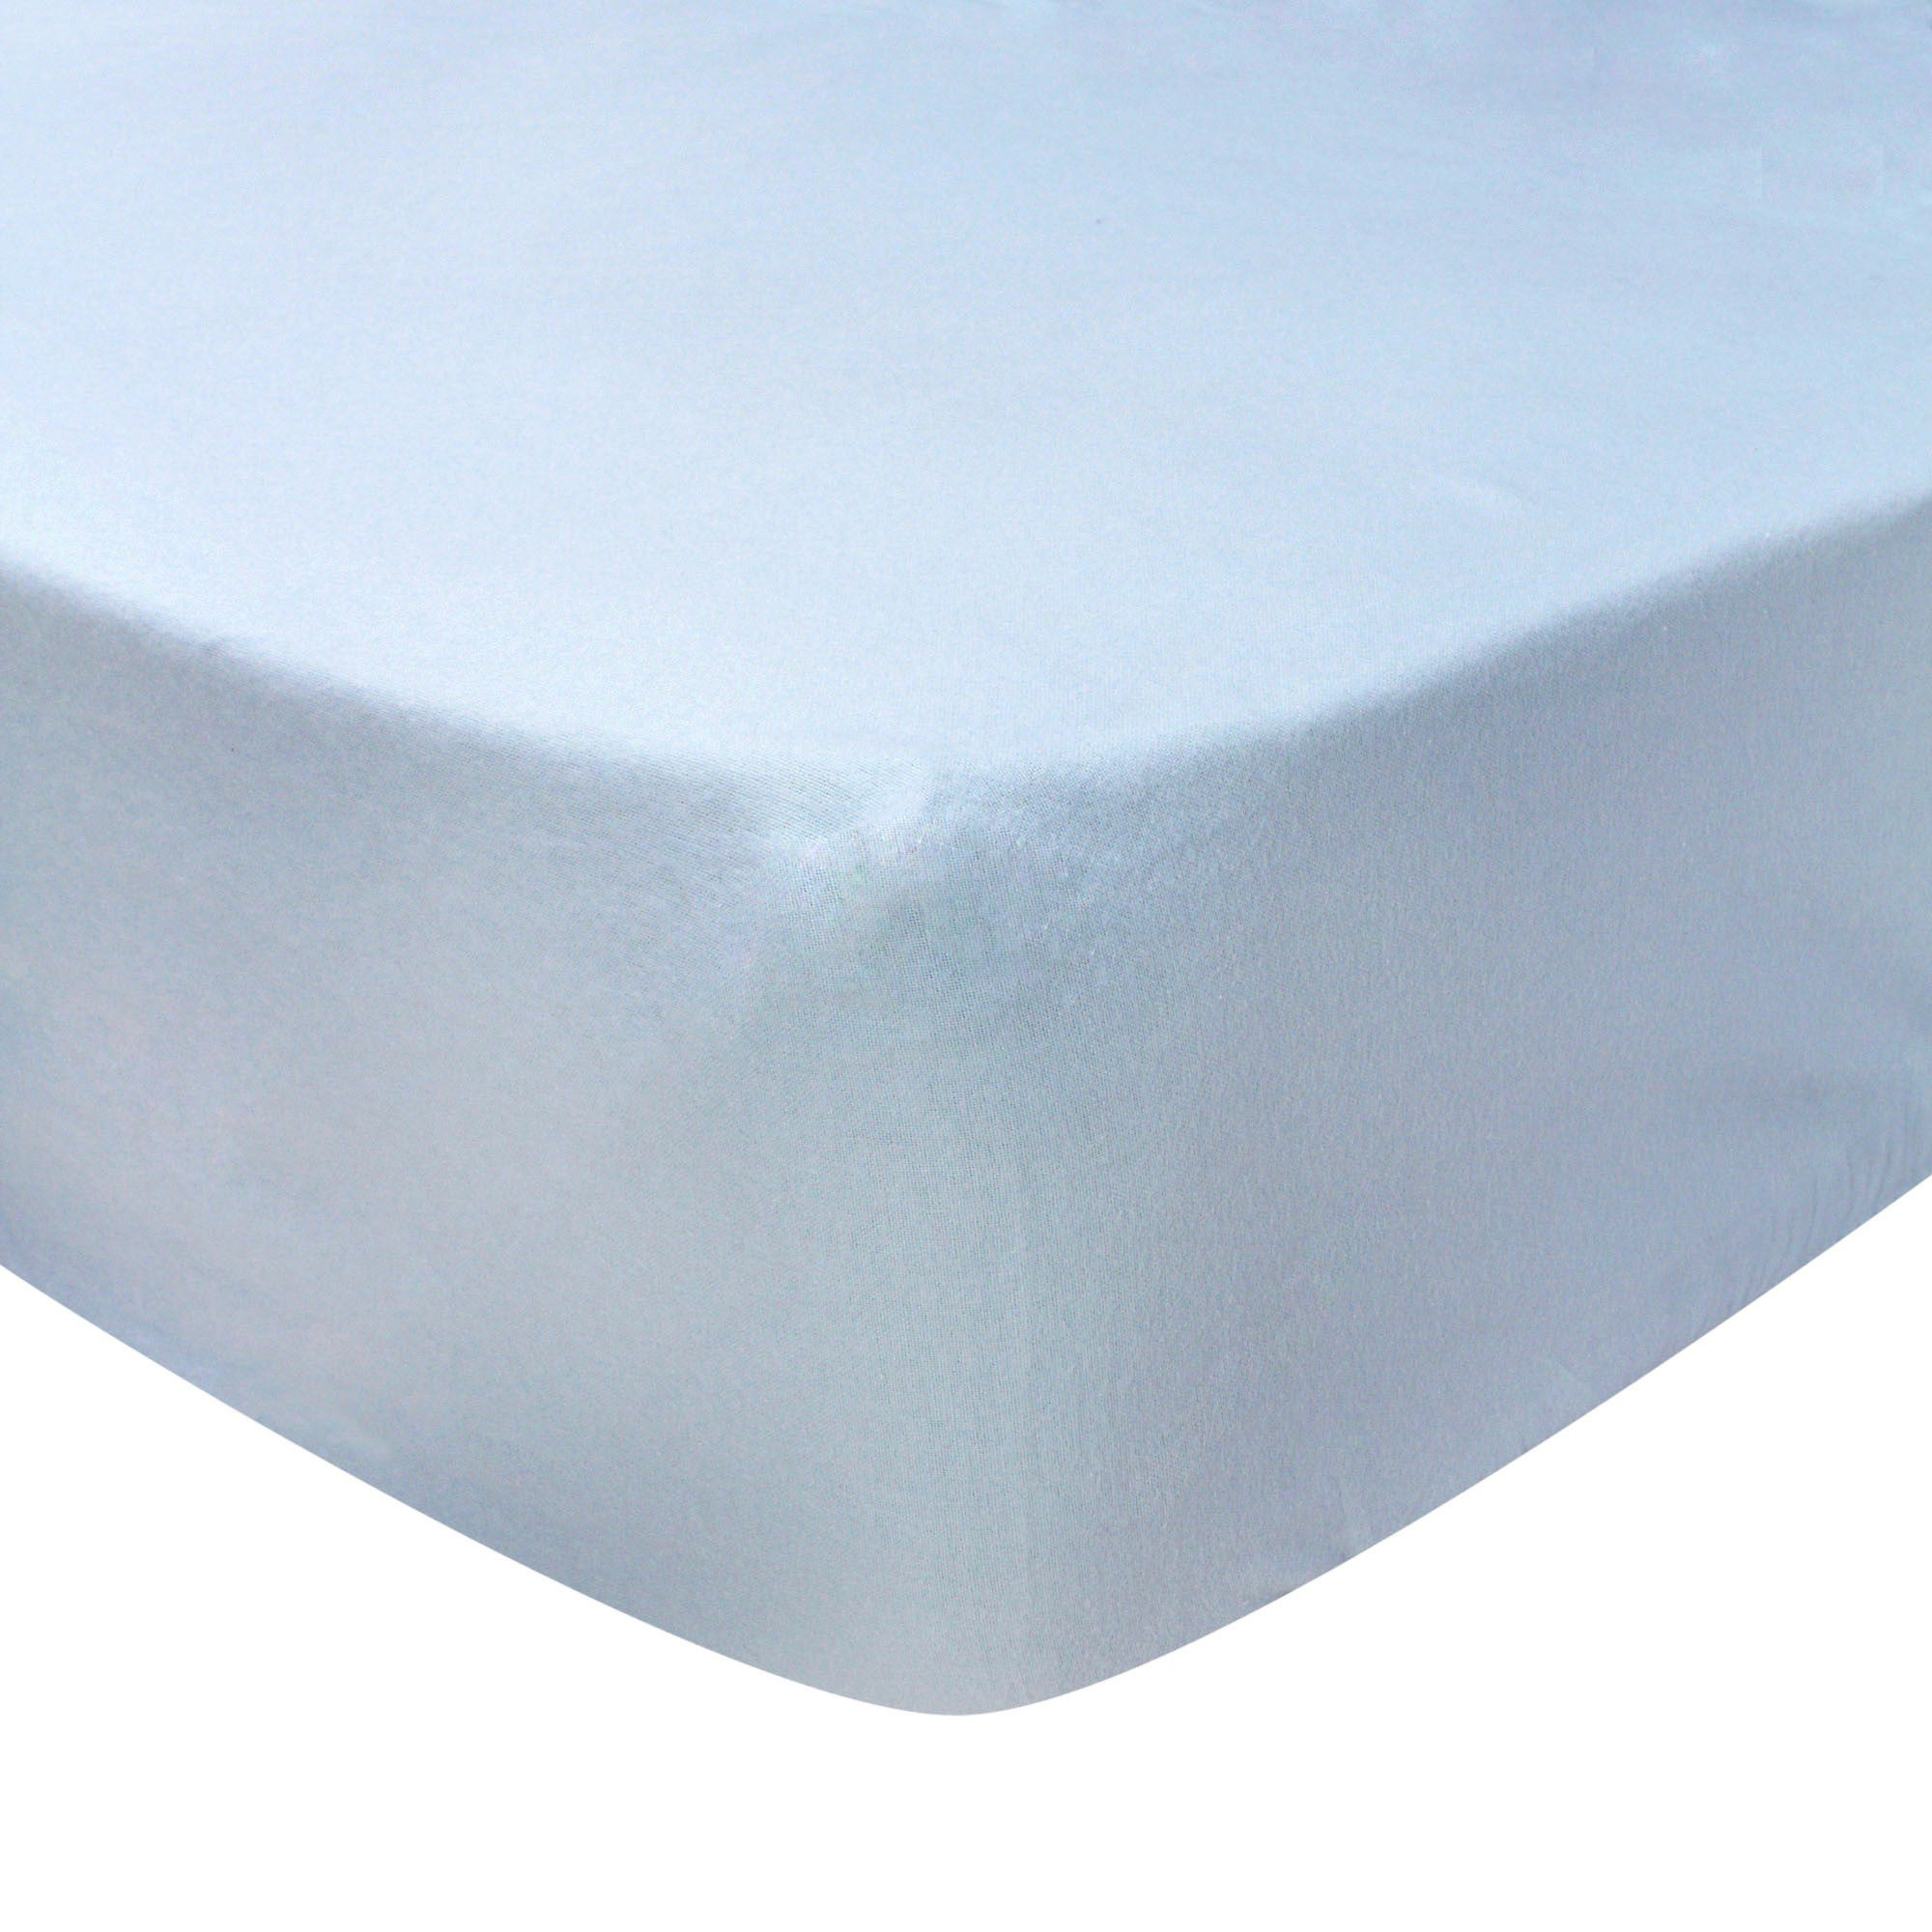 Photo of Luxury brushed cotton standard 28cm fitted sheet pale blue